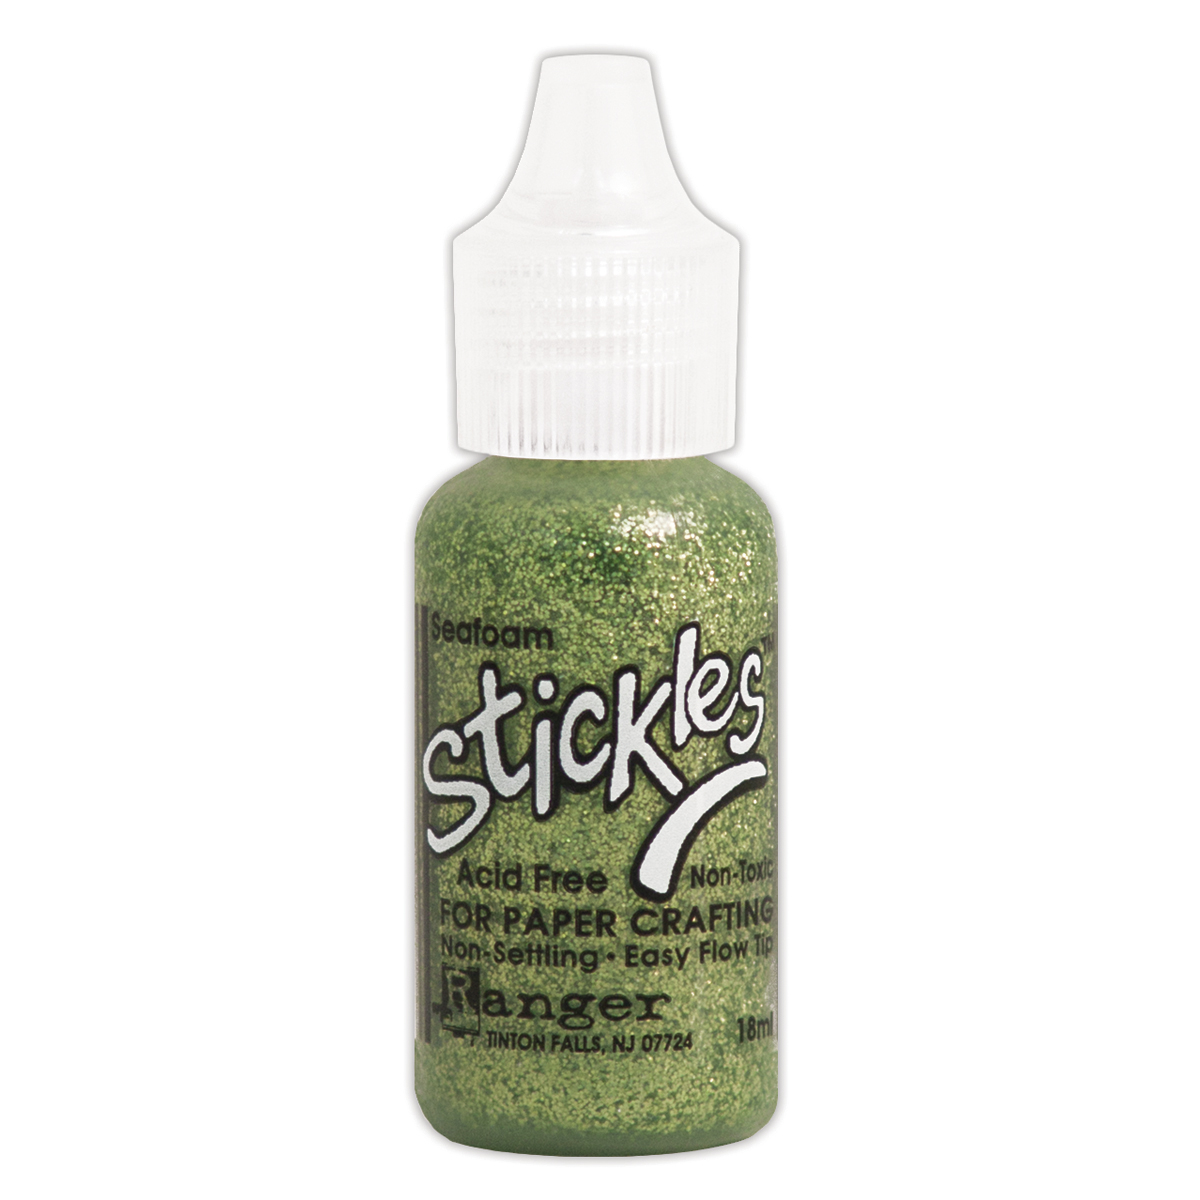 Stickles Glitter Glue .5oz-Seafoam